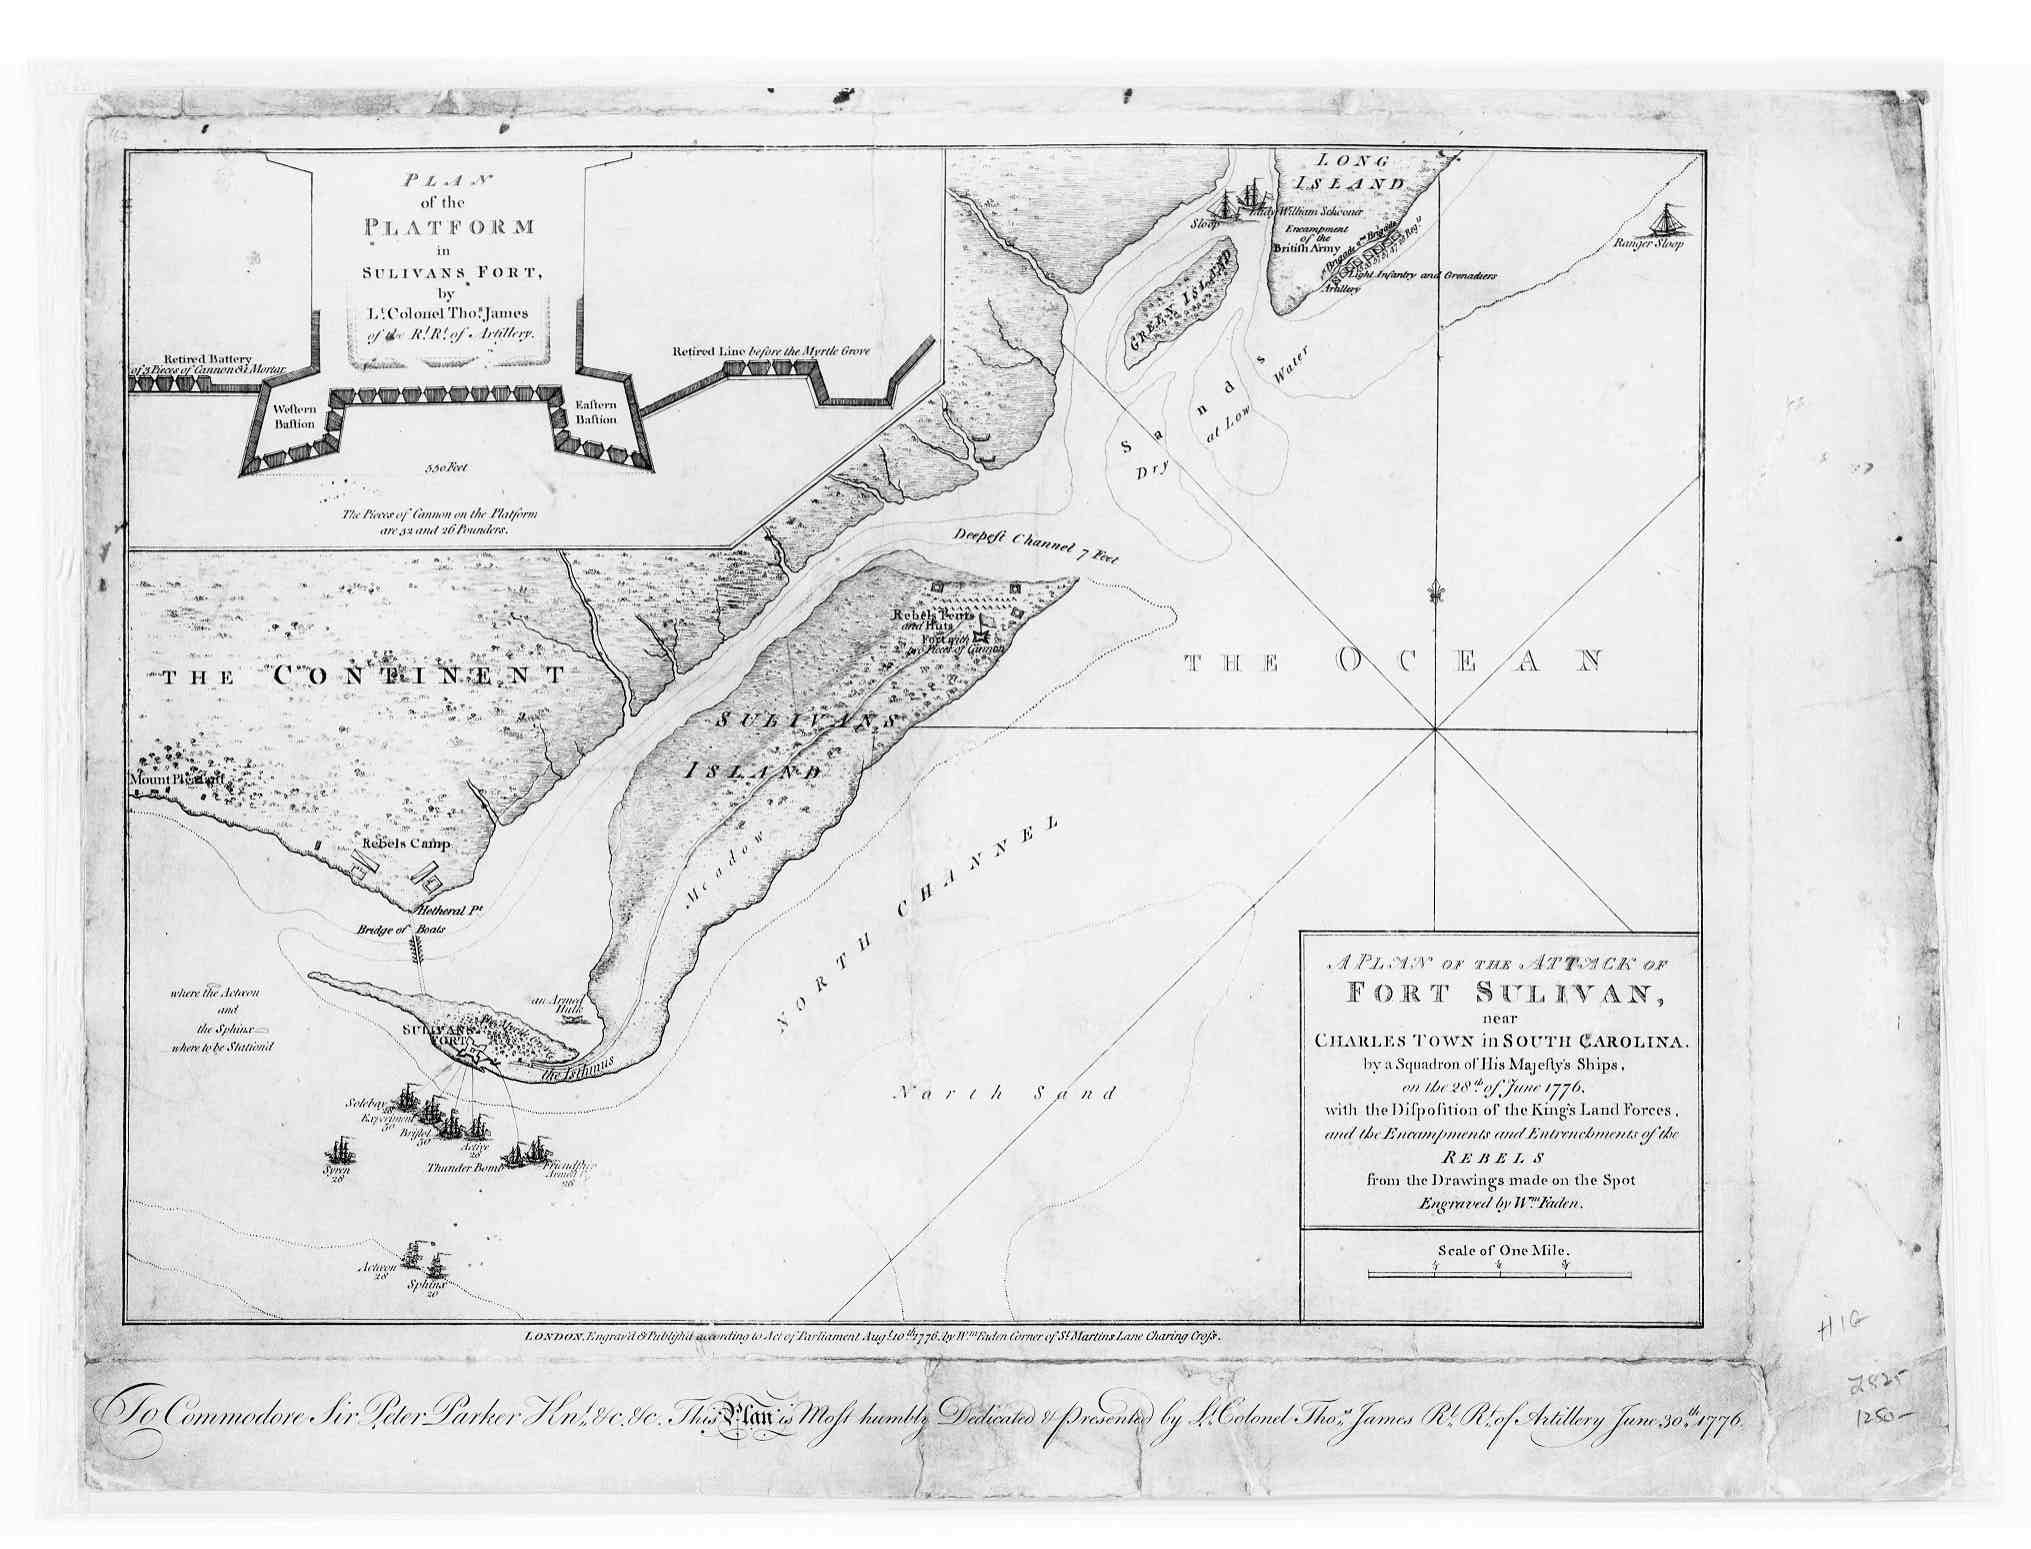 index to american revolution 1776 a plan of the attack of fort sulivan near charles town in south carolina